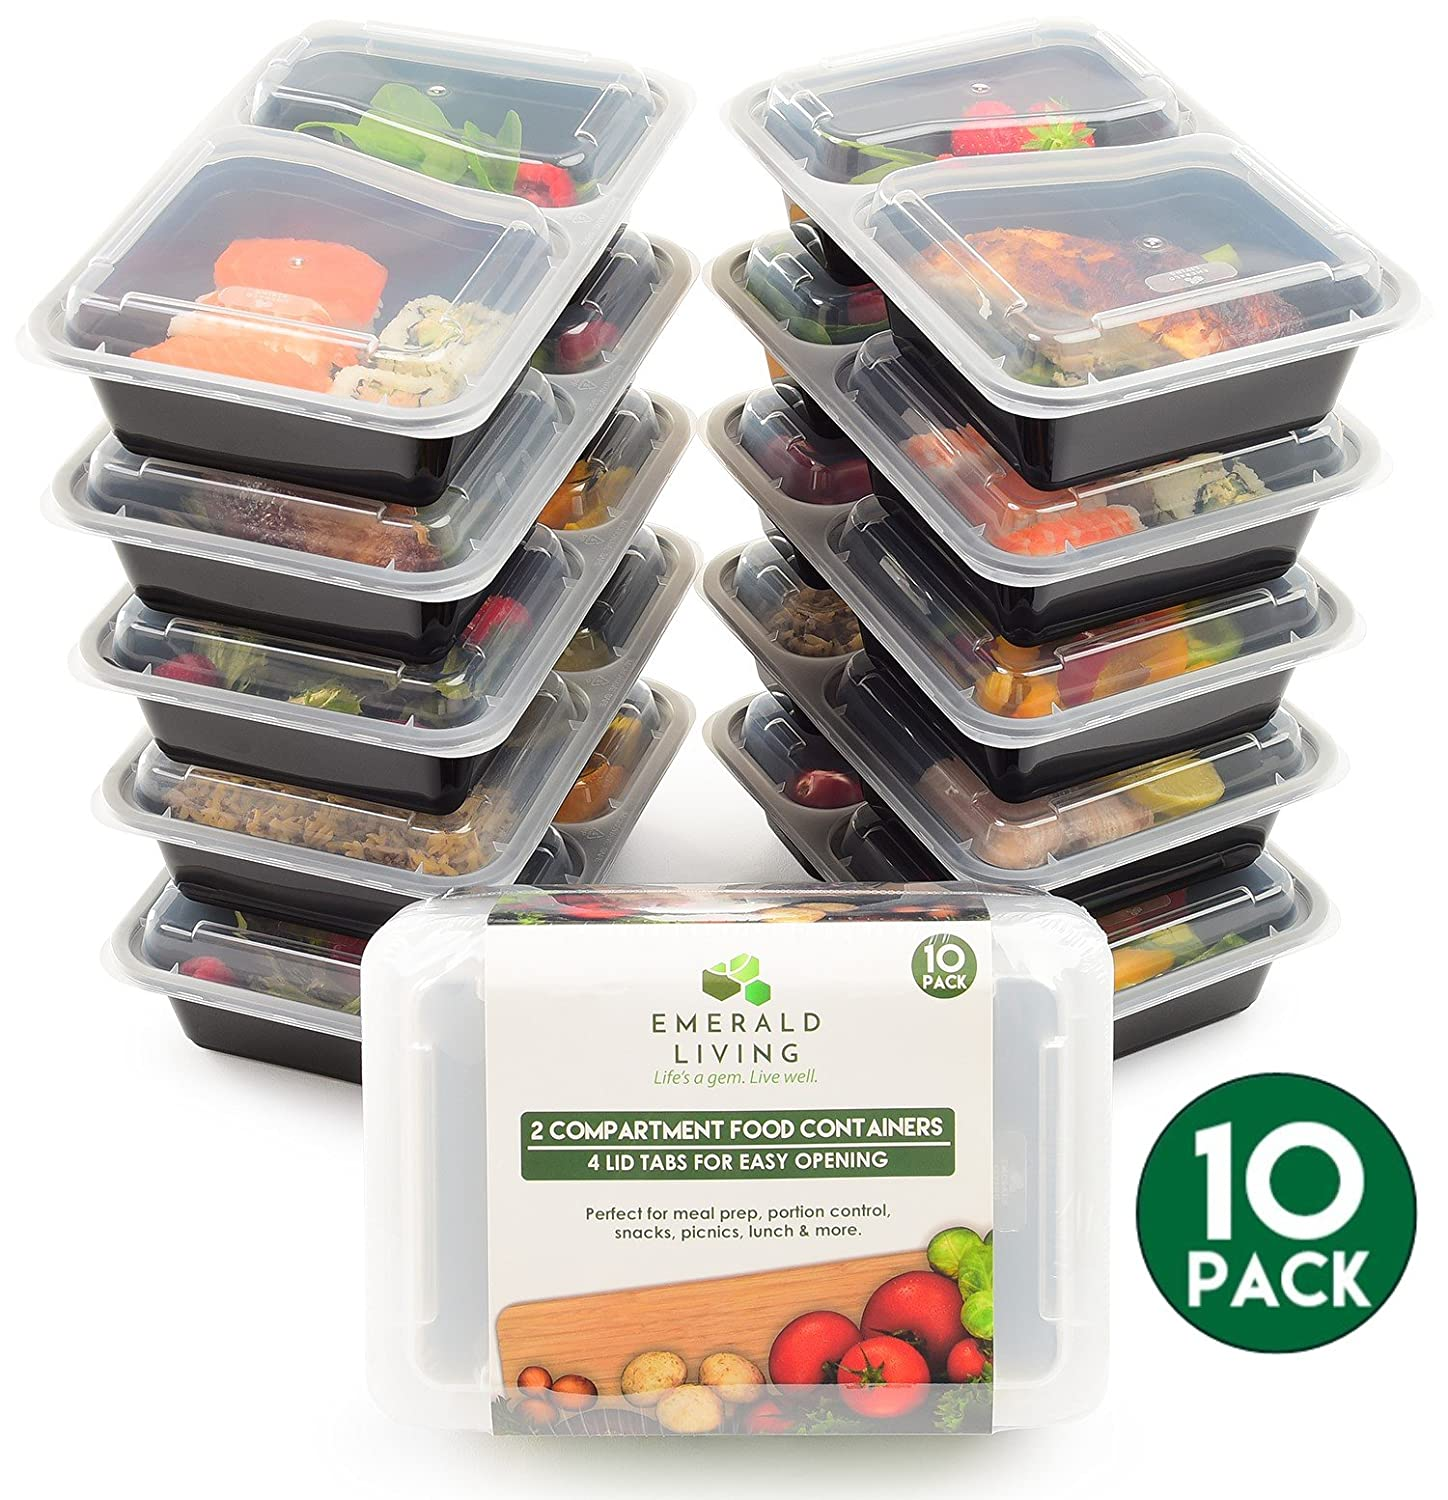 Emerald Living Premium 2 Compartment Meal Prep Container Set. 10 Pack of BPA Free Plastic Food Containers with Lids. Food Prep Boxes with Bonus Ebook Included. 0.8L